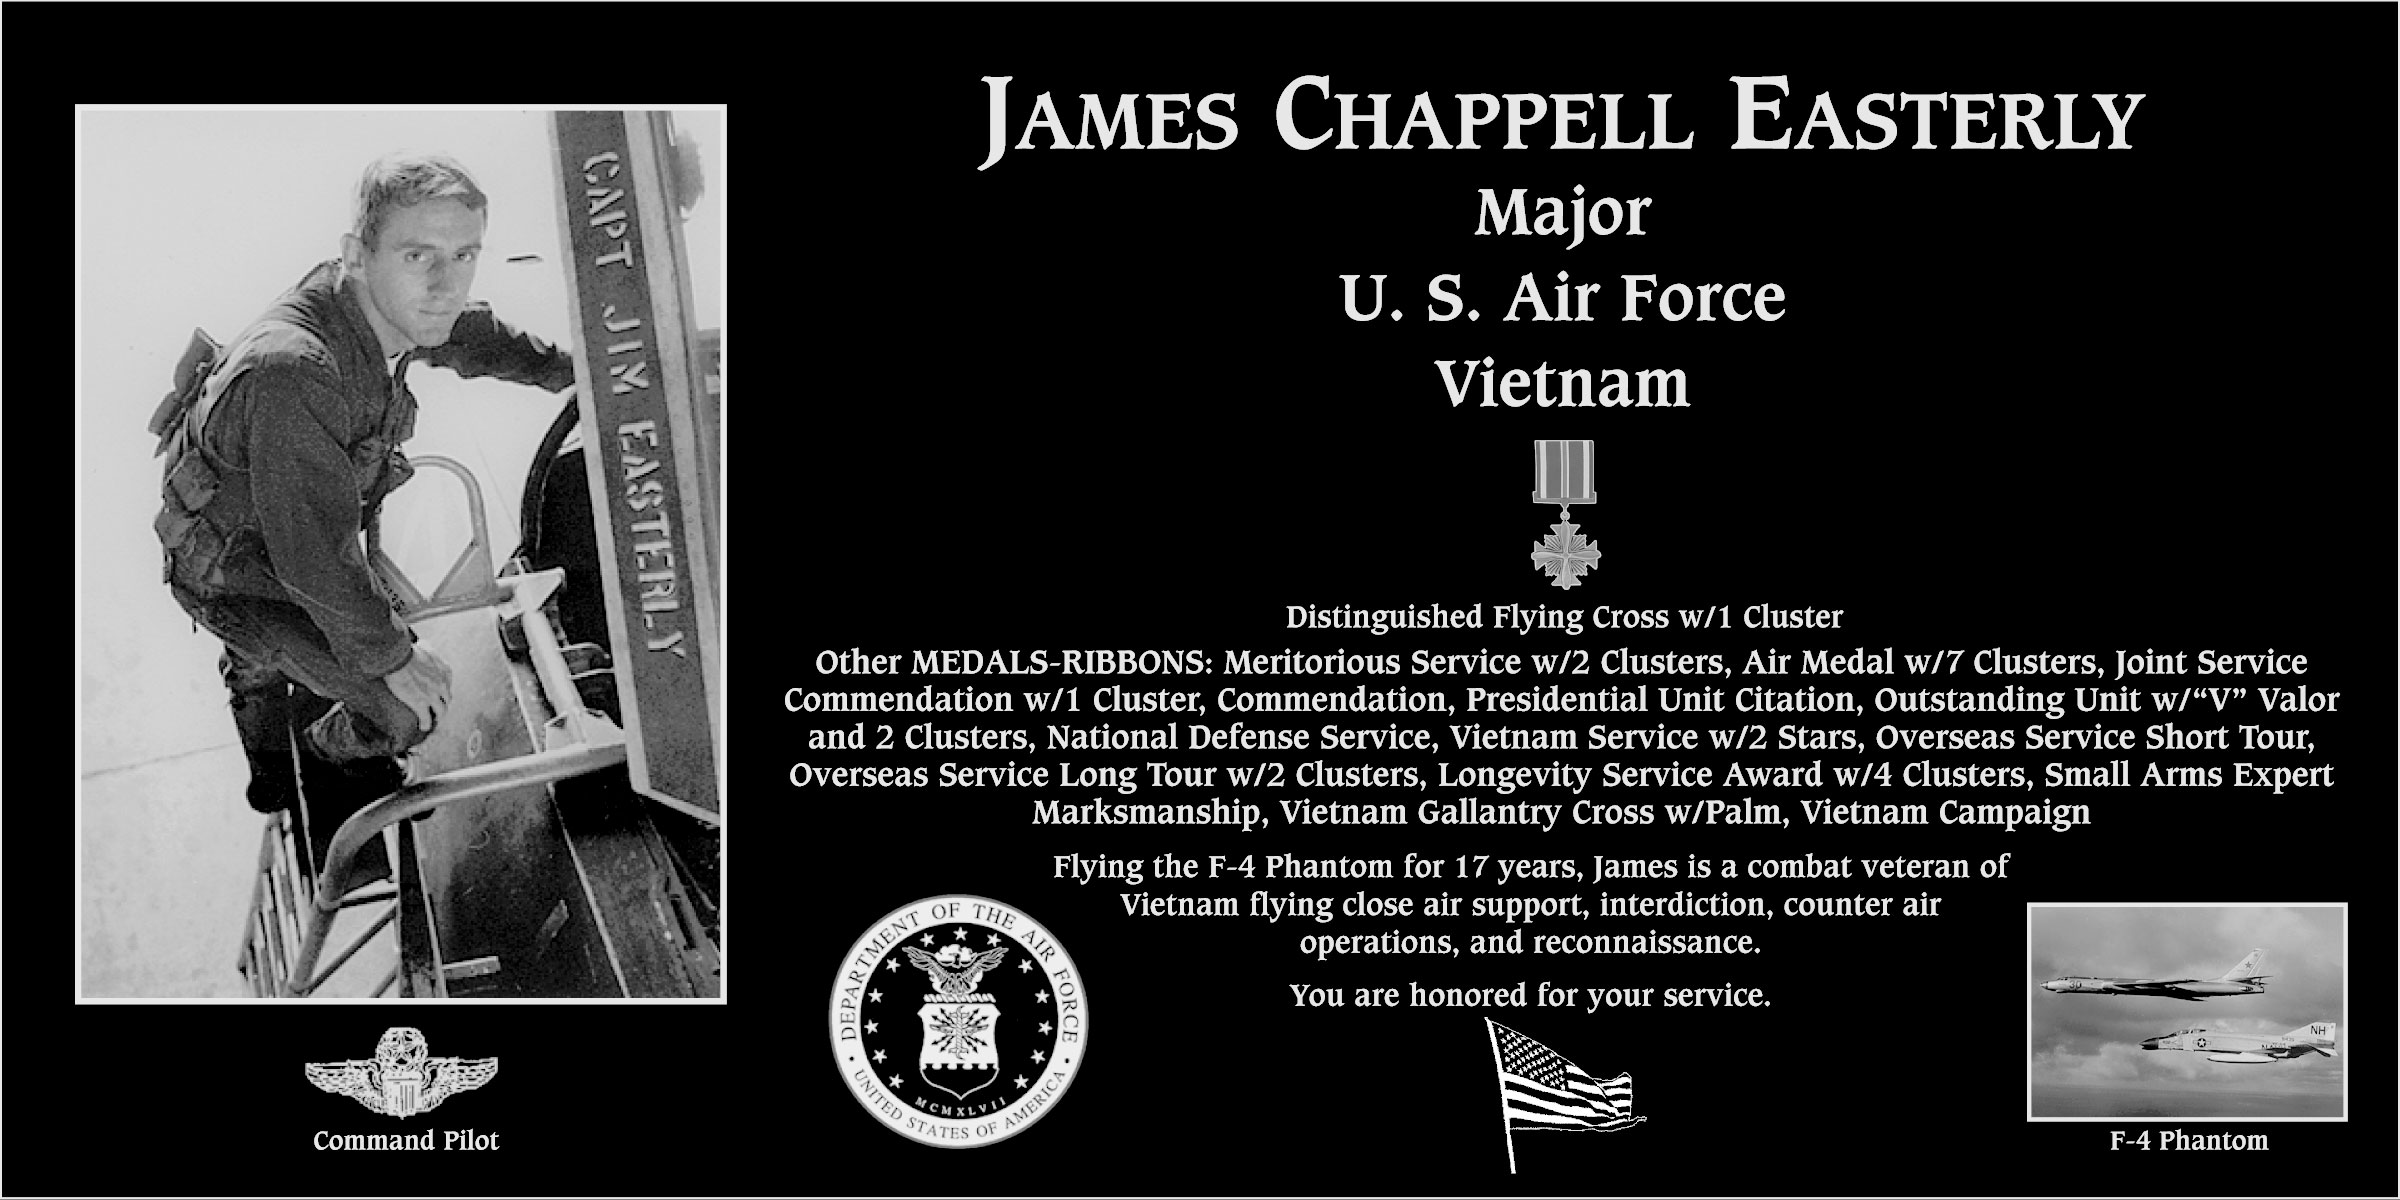 James Chappell Easterly